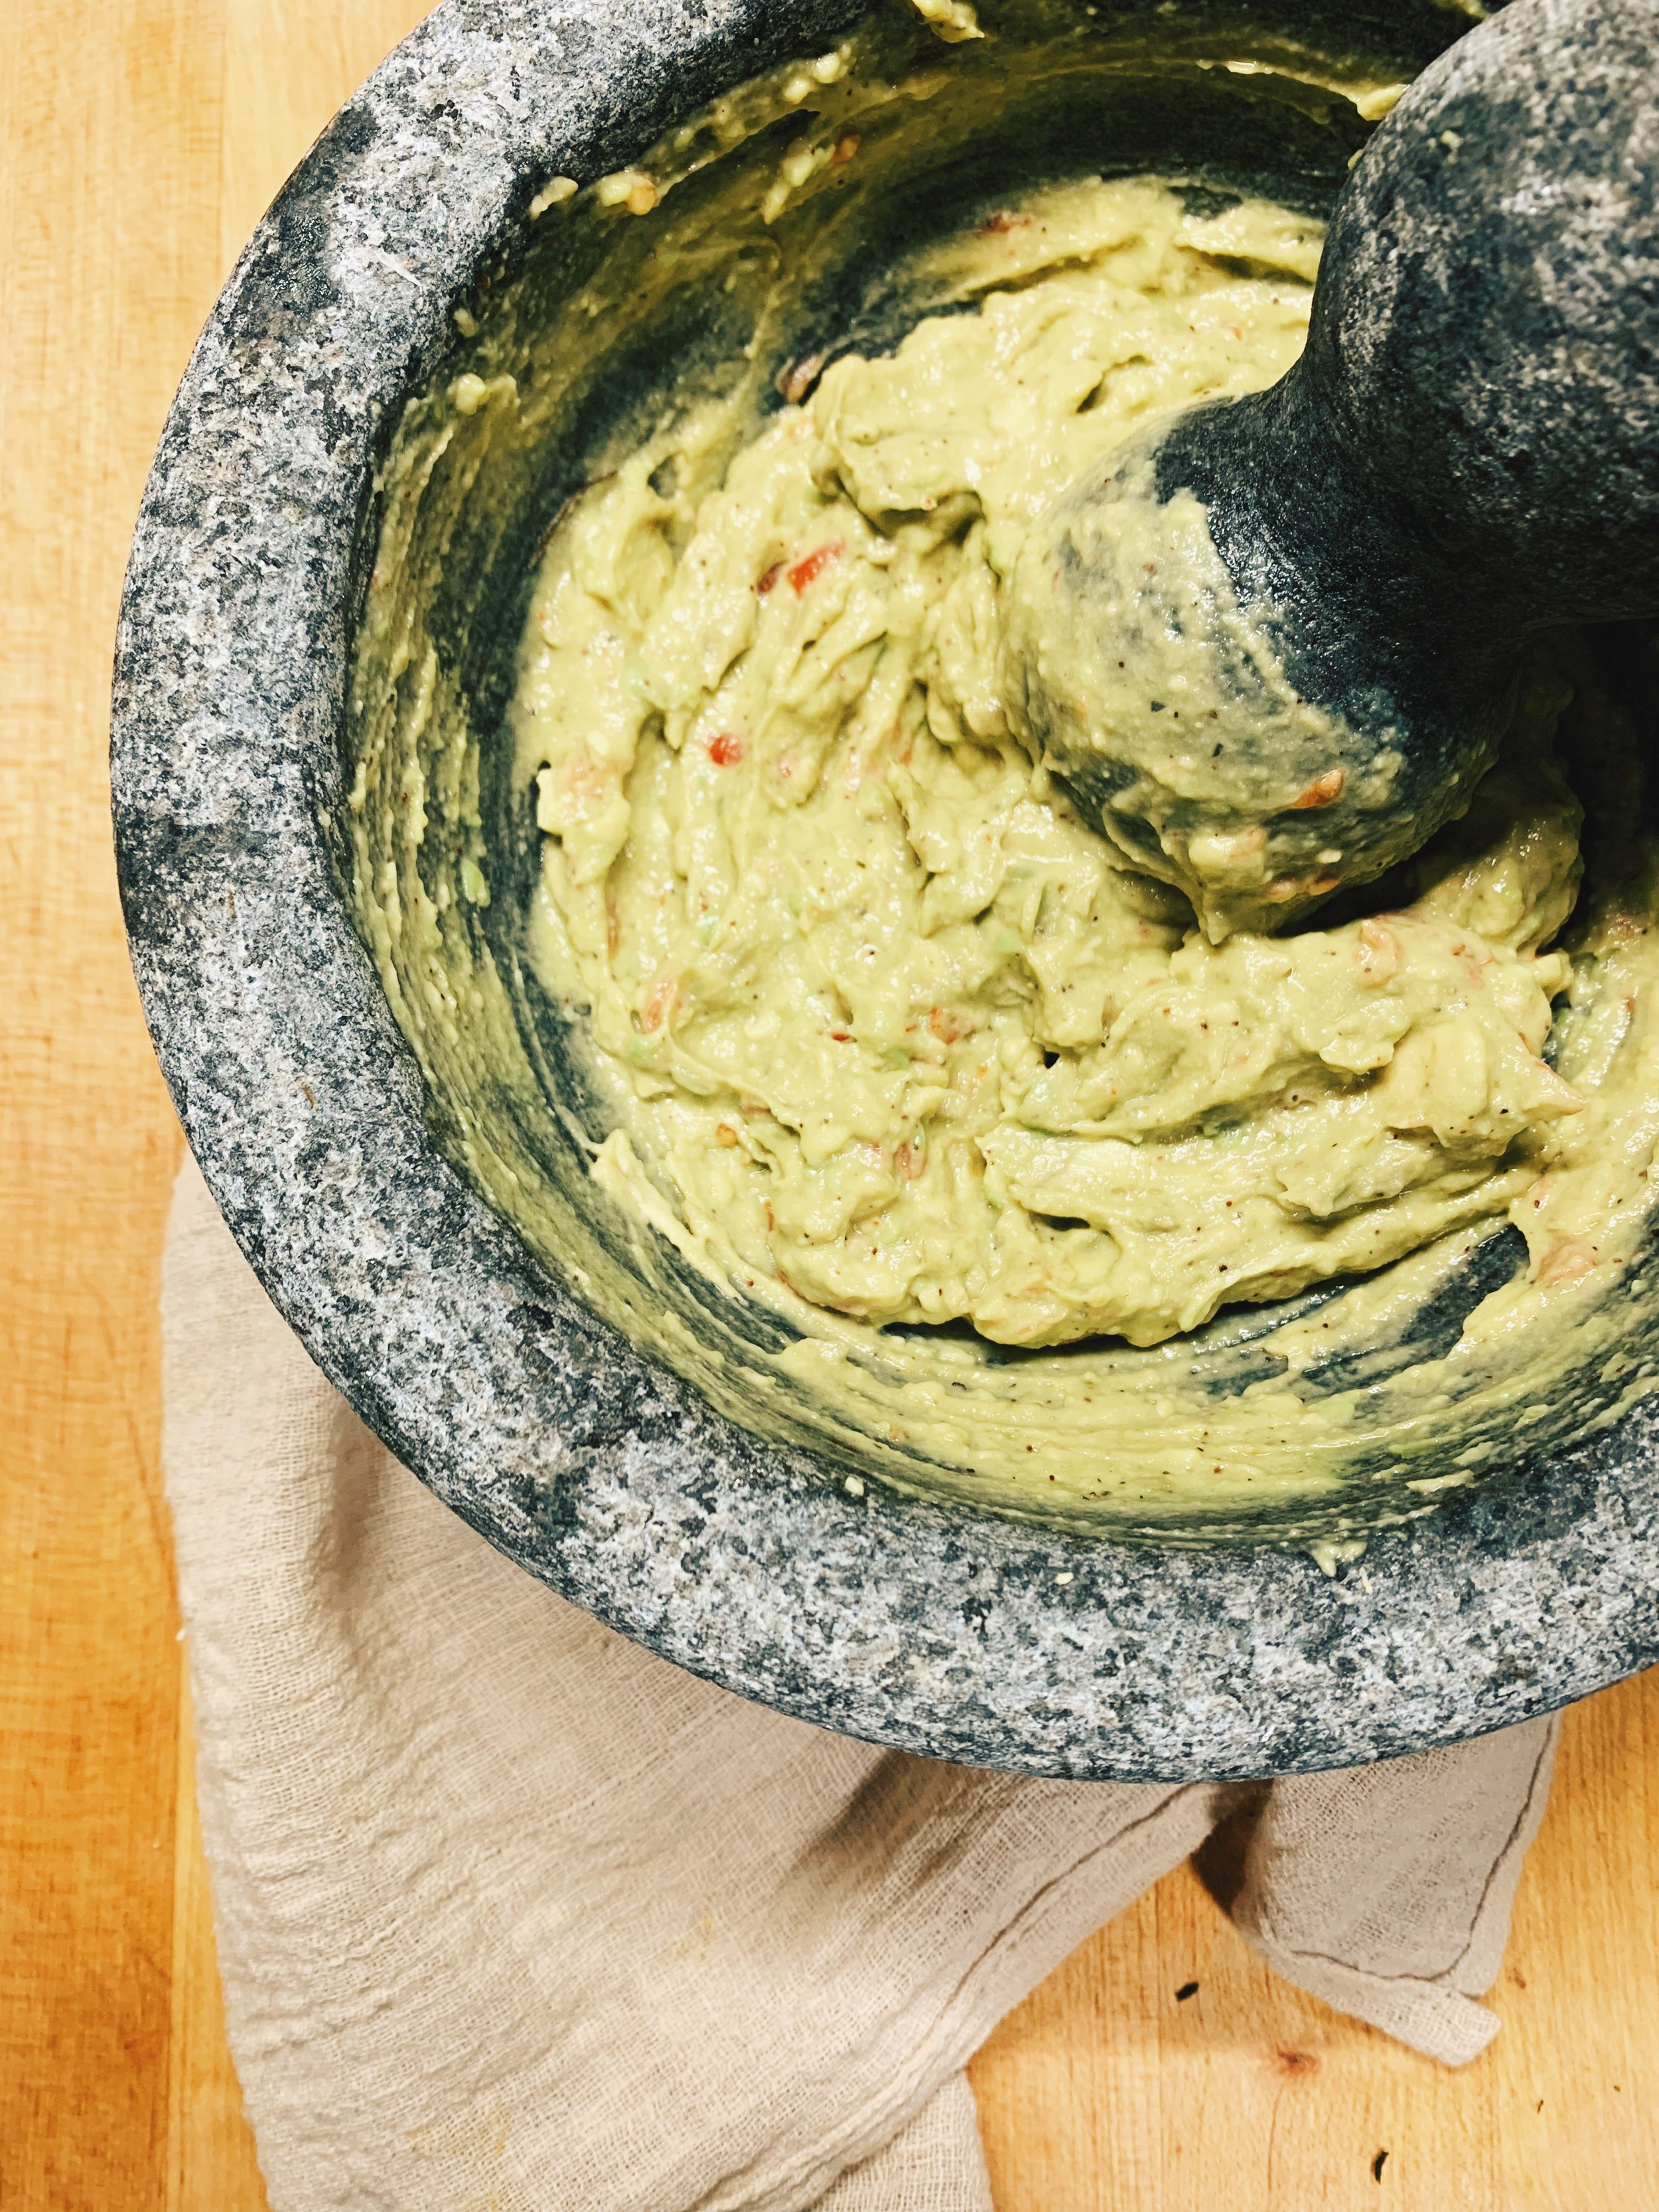 "Nicolette's ""Famous"" Guac   There is nothing famous about my Guac, but it is TASTY AF, so try it out! I don't measure but the ""recipe"" is below!  1 Ripe Avocado 3-4 Baby Tomatoes (Or 1 tbs of salsa) 1 Tsp Chili Powder 1/2 Tsp Cumin 1/4 Tsp Garlic Powder (or fresh garlic if you're fancy) Juice of 1/2 Lime Salt & Pepper to taste Mash the shit out of it and voila! Enjoy!"